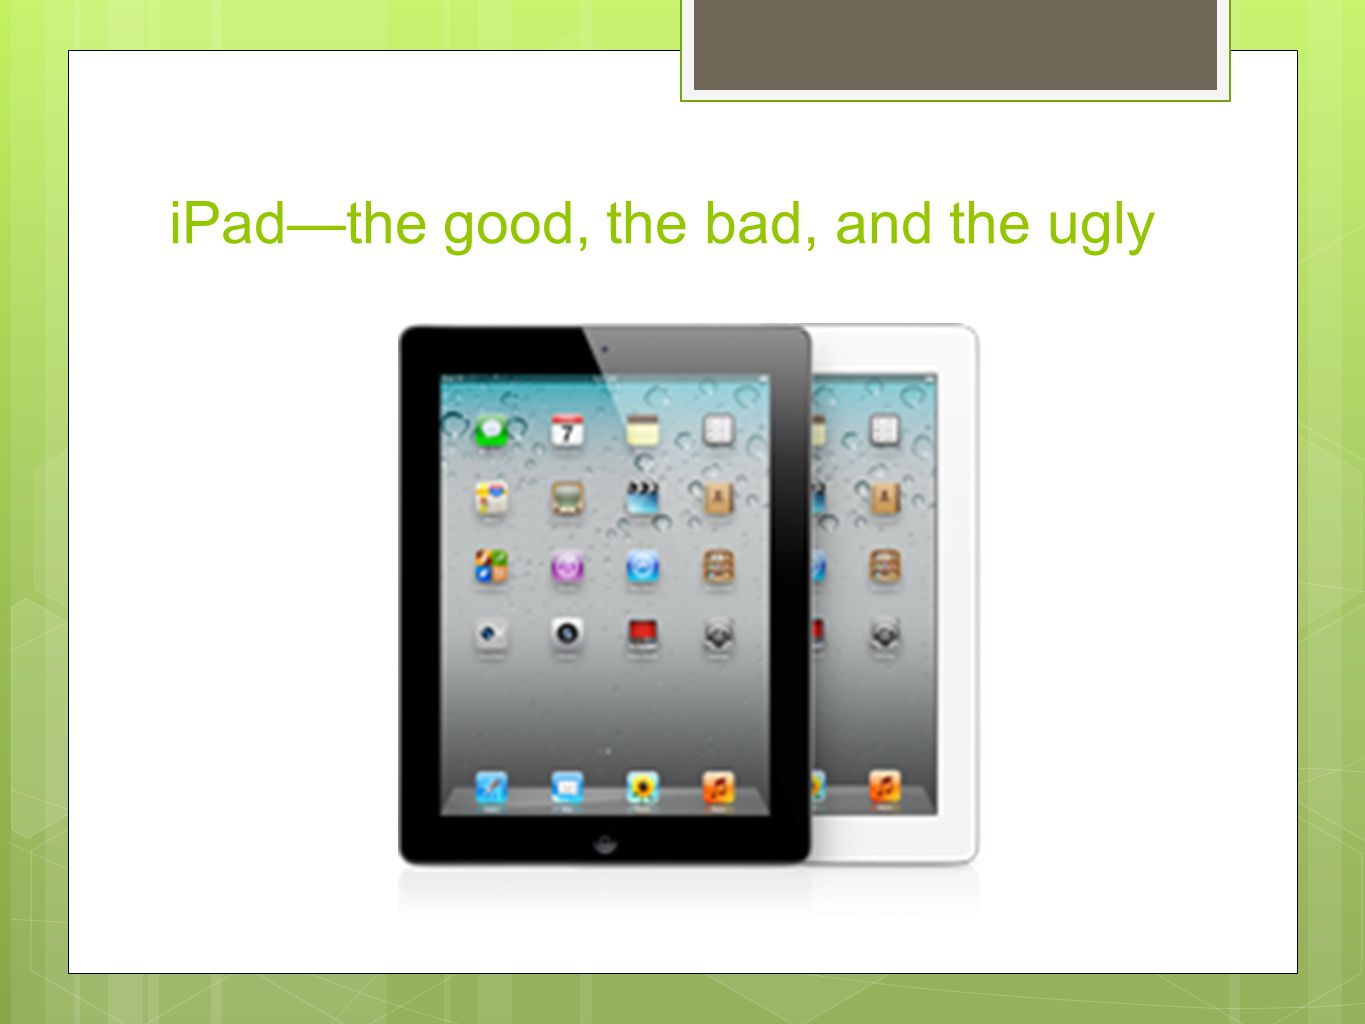 iPad—the good, the bad, and the ugly